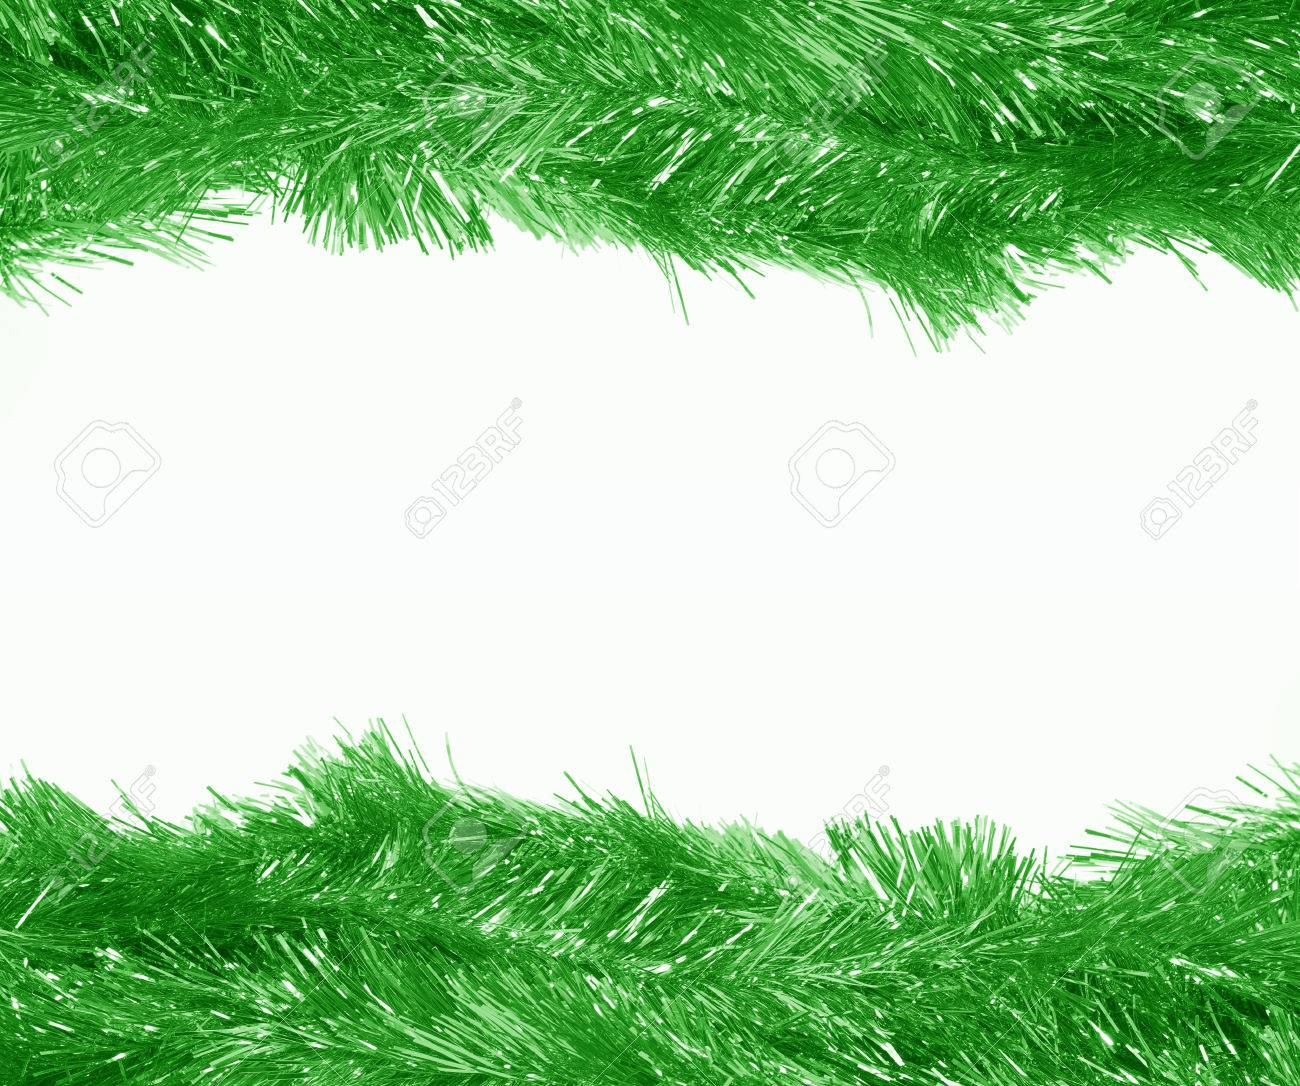 Picture frame christmas ornaments - Christmas Ornaments Green Frame On White Background Stock Photo 24222277